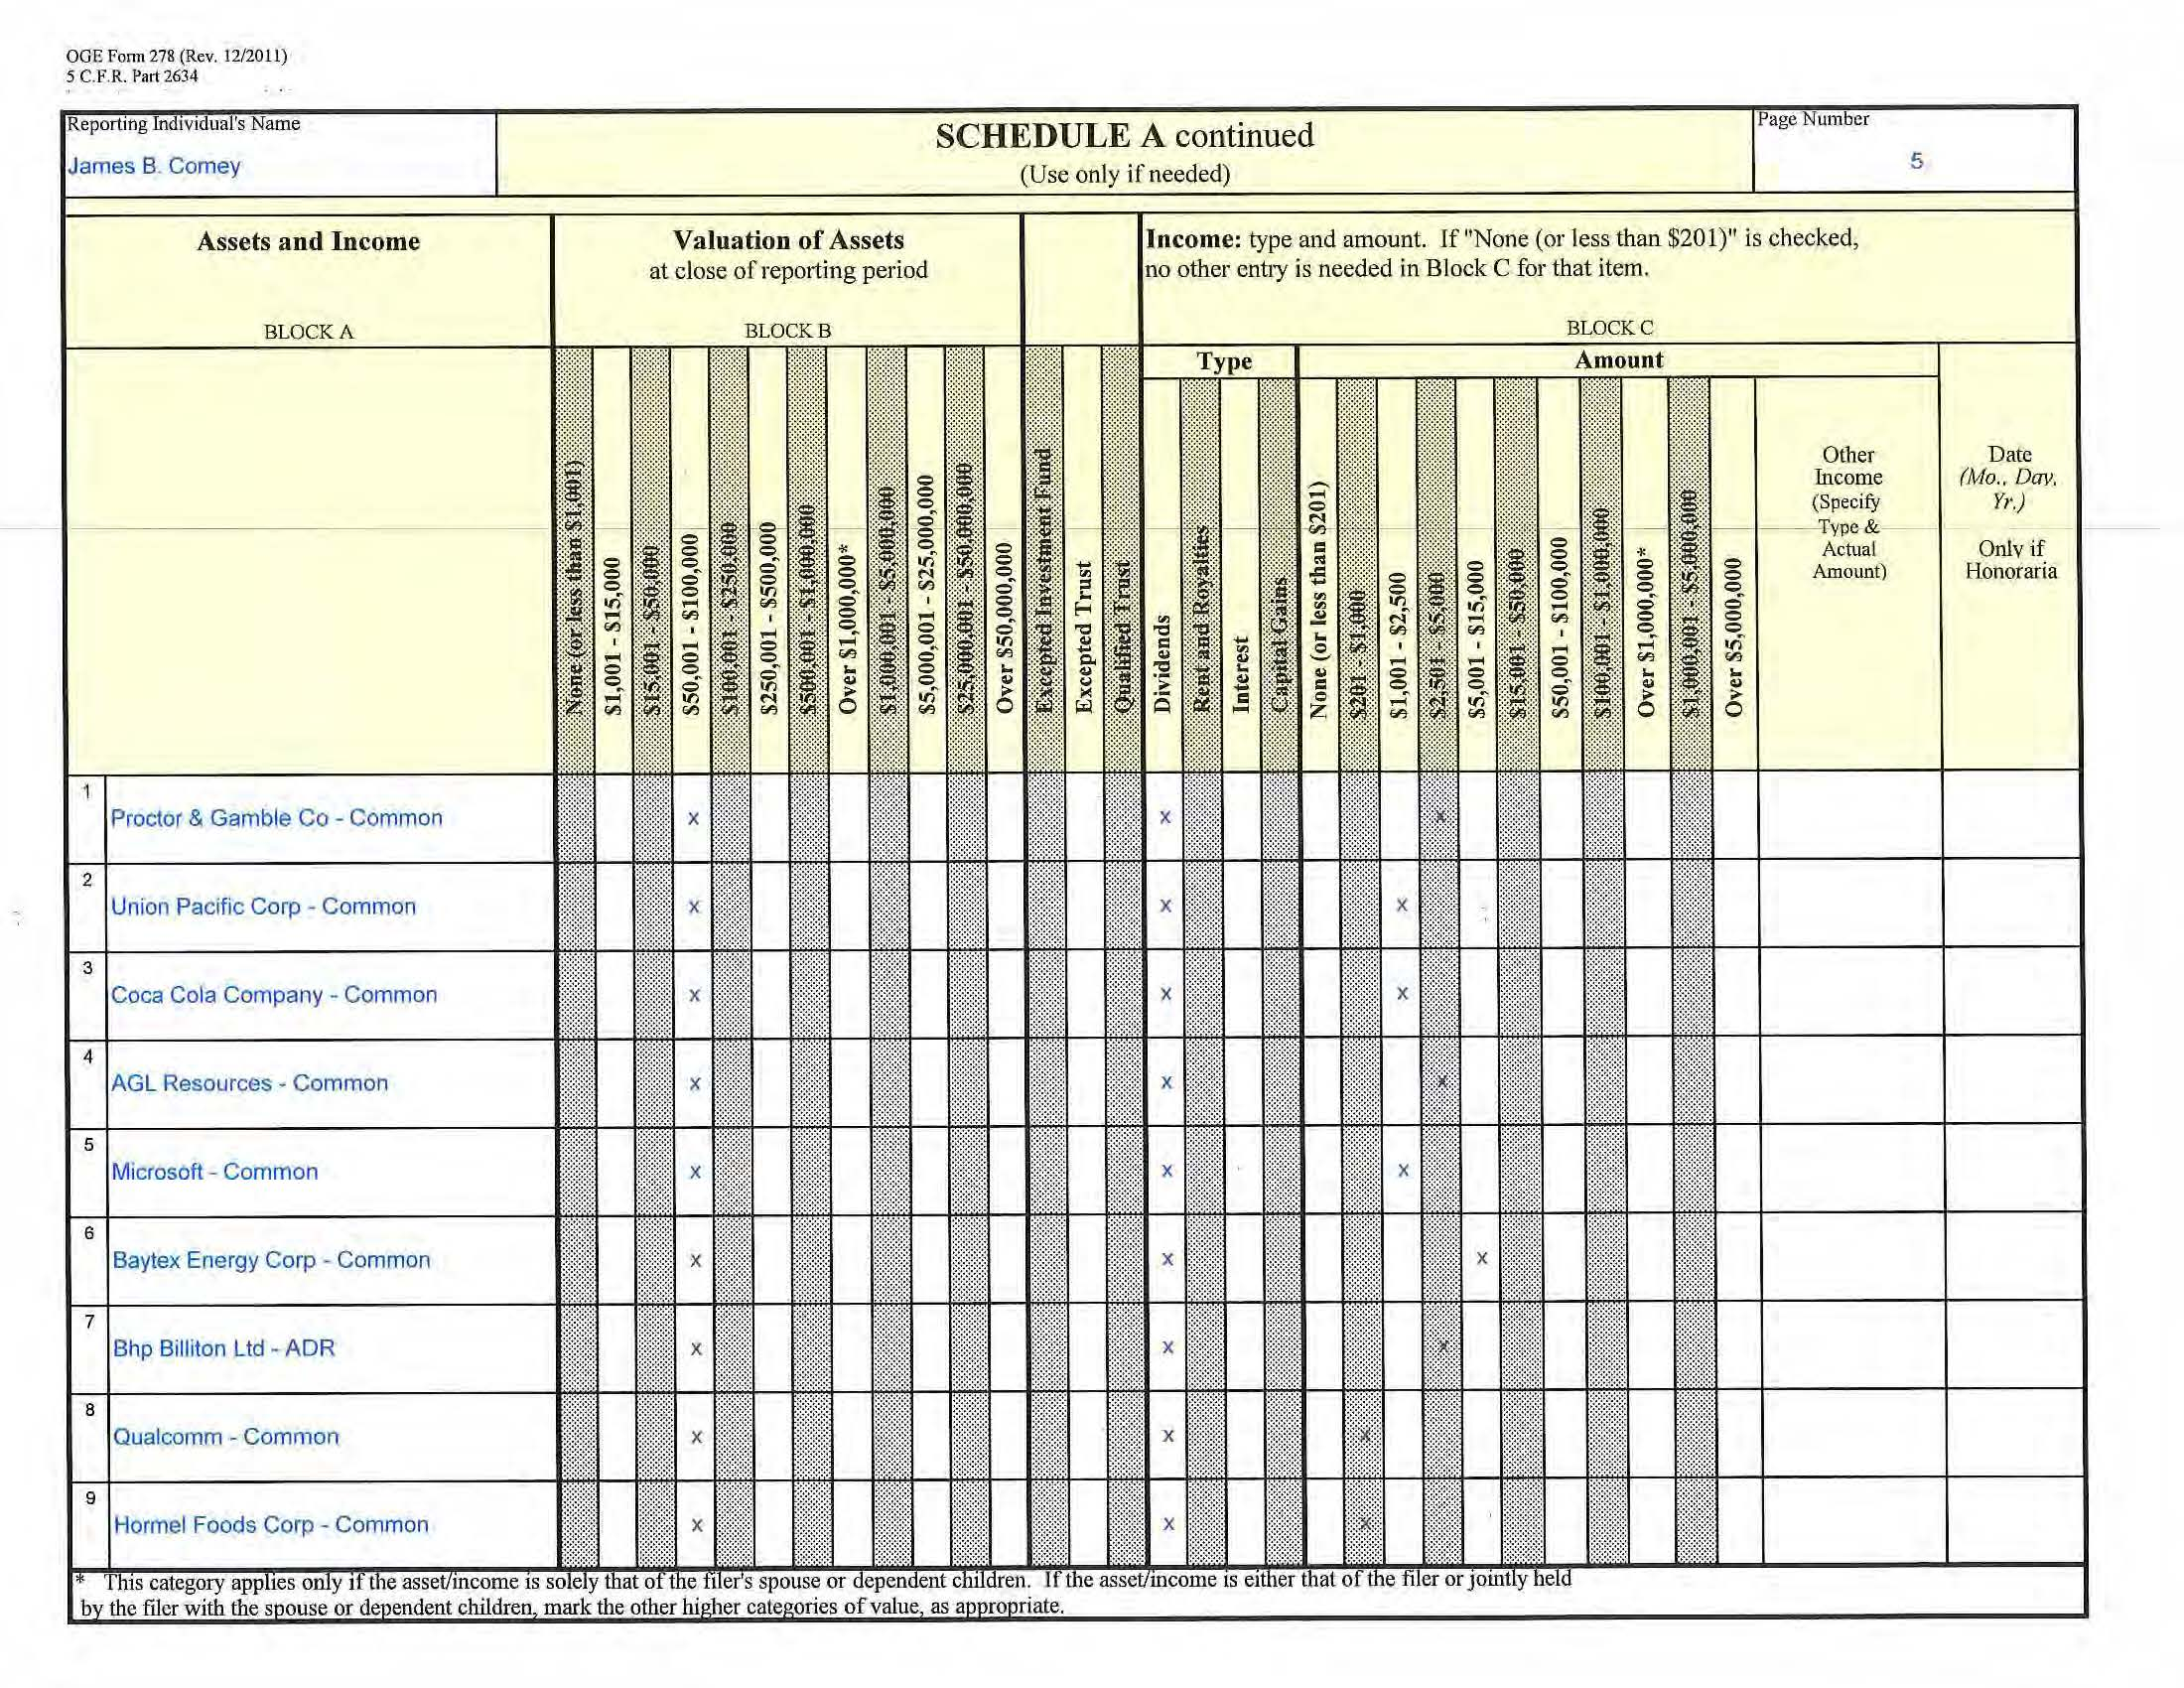 James-B-Comey-2013Form278NewEntrant_Page_05.jpg